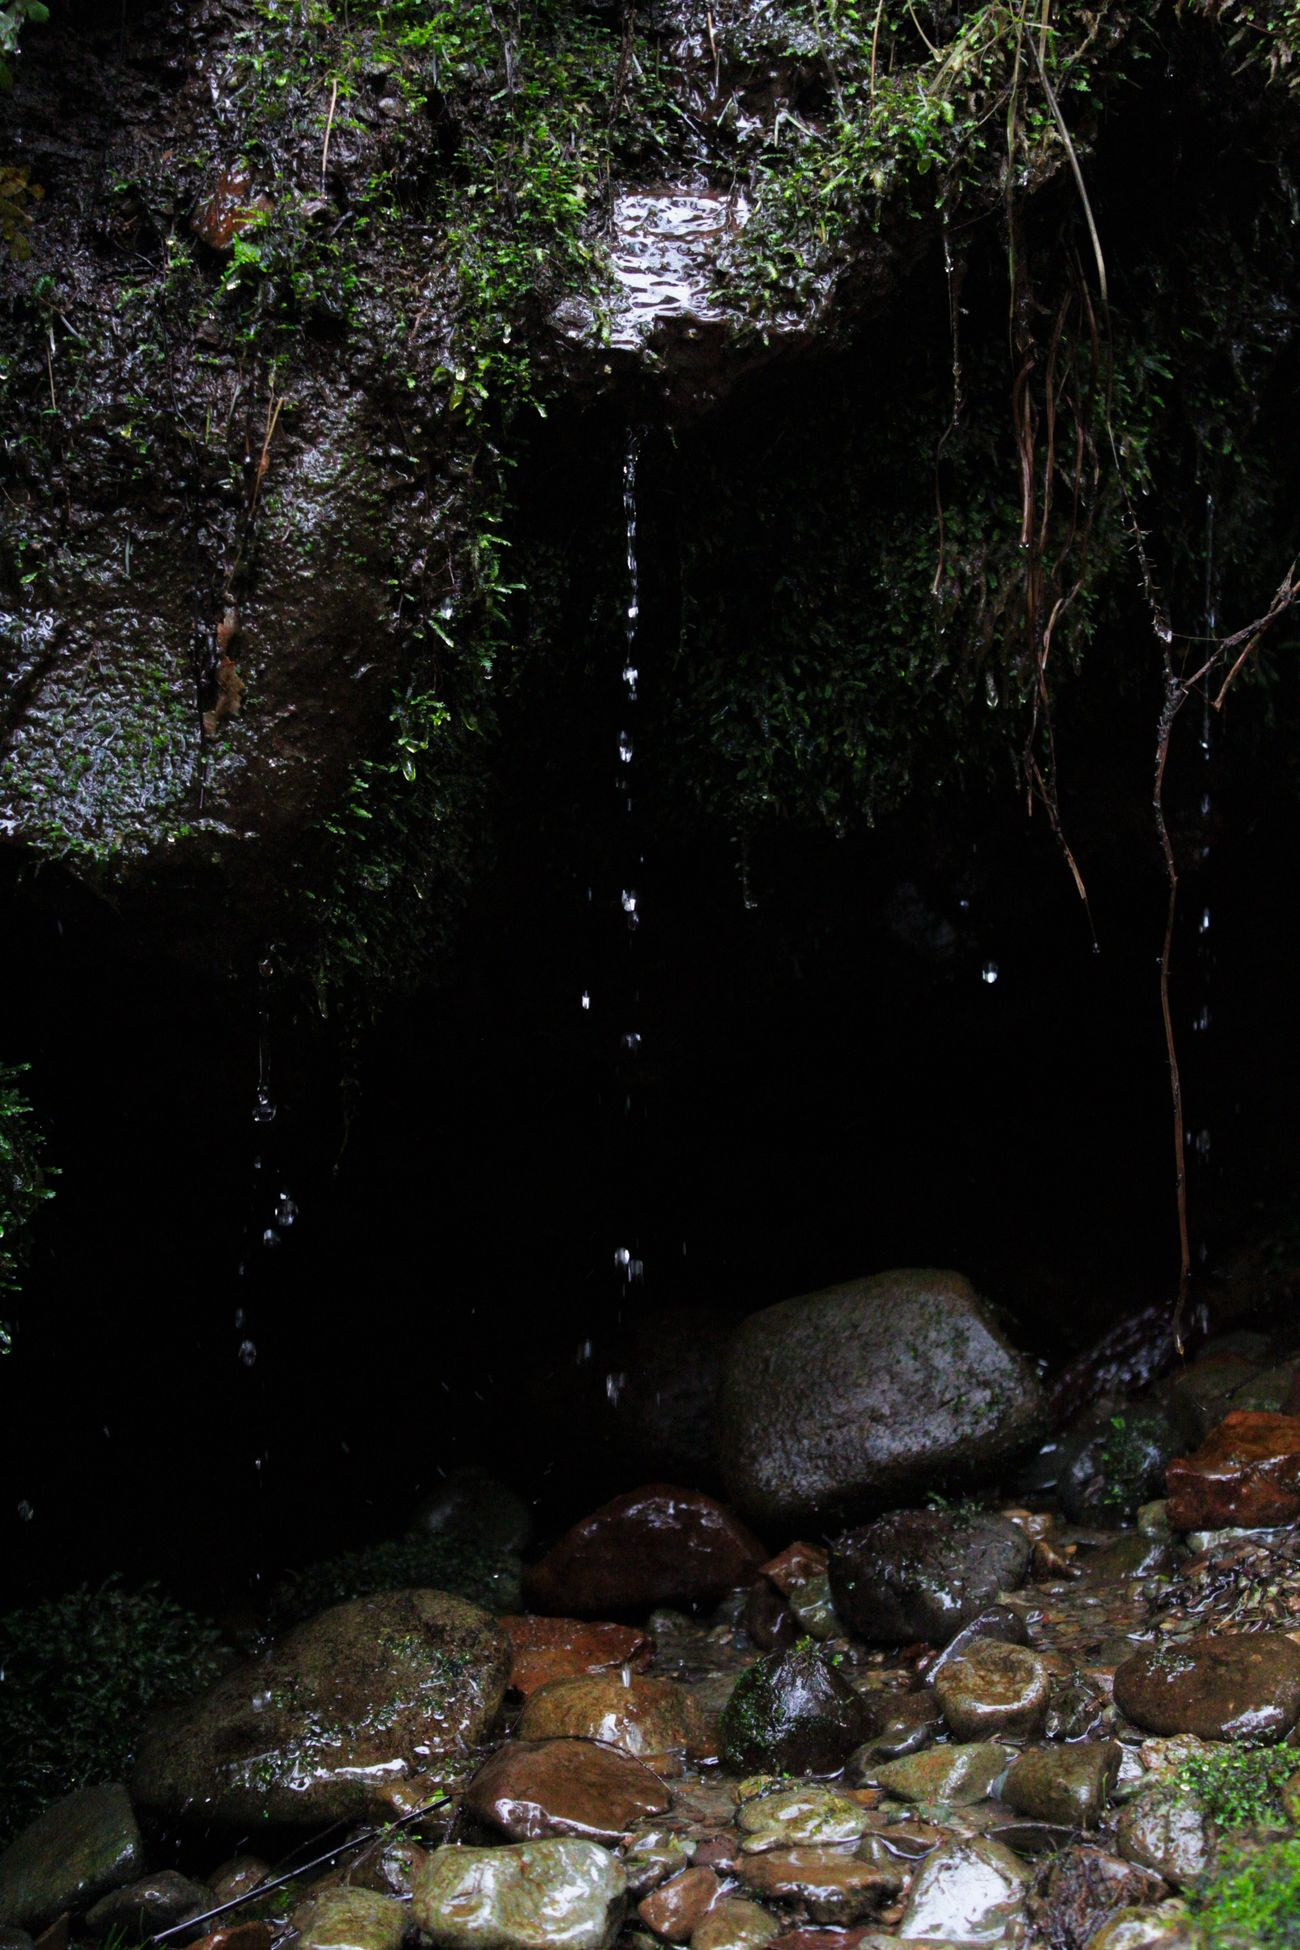 Water Water Flowing Over Rocks Washington Washington State Water Flowing Down Speed Relaxing View Water Flow Canonphotography Moss Lostplace Motion Green Color Mossy No People Drip Dripping Dripping Water Fast Shutter Speed Pebbles Dark Darkness Forest Forest Photography Relaxing